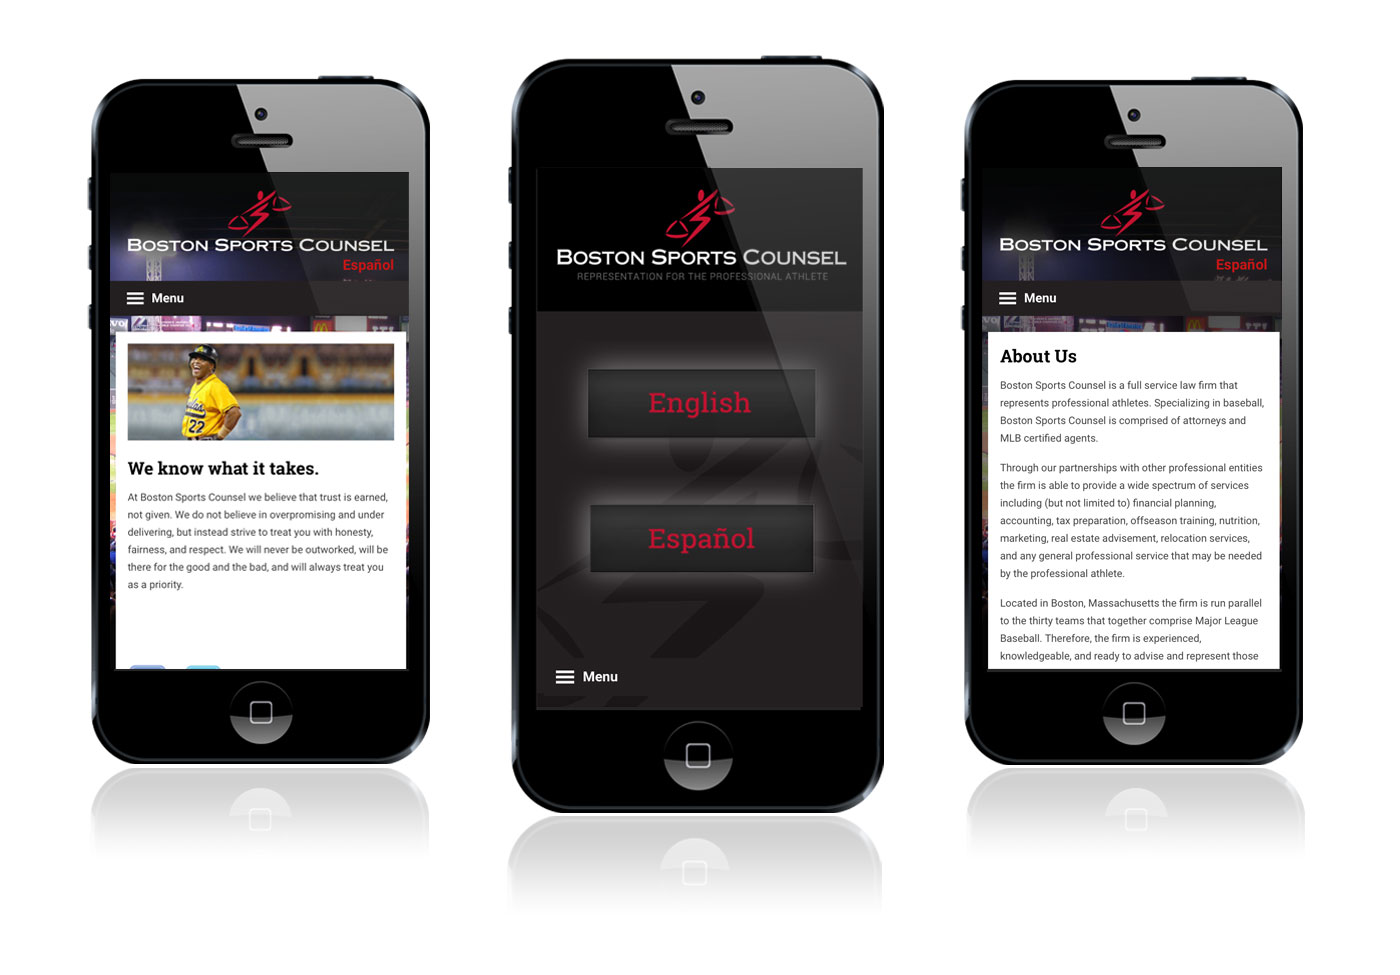 Mobile website design for Boston Sports Counsel